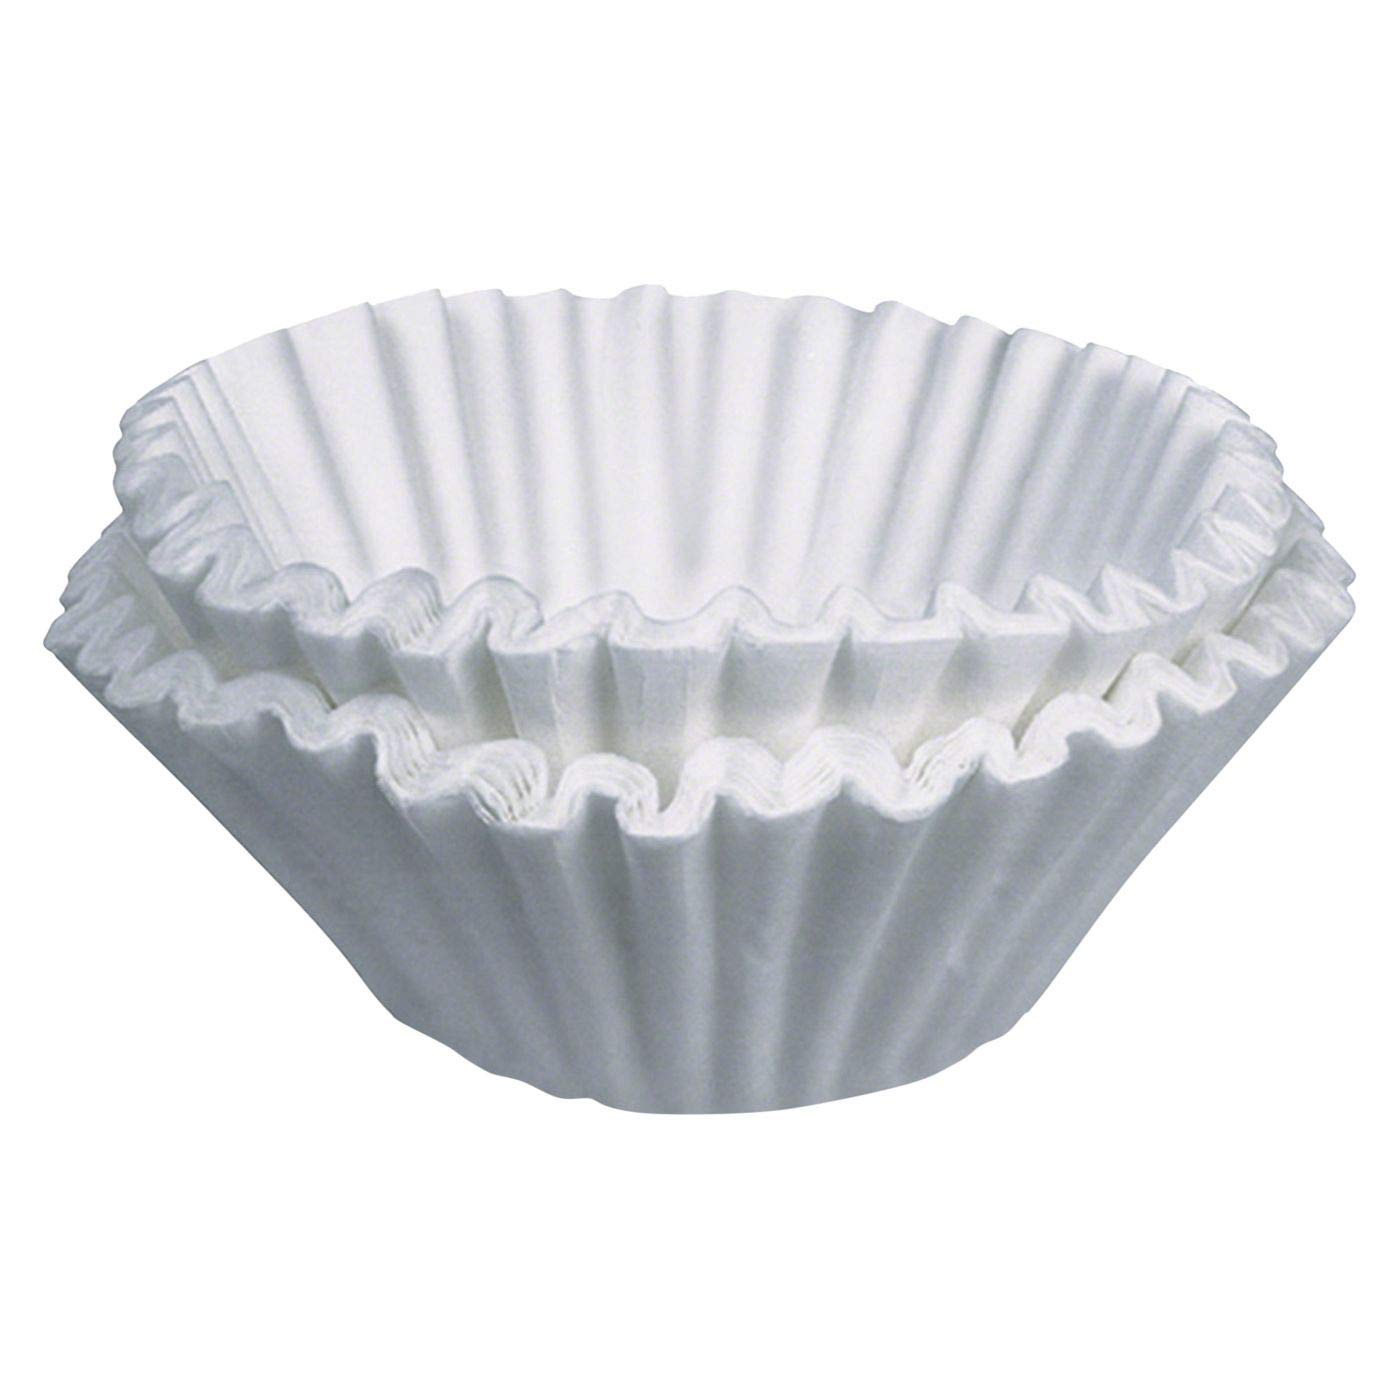 Tupkee Coffee Filters 8-12 Cups, Basket Style, White Paper, Chlorine Free Coffee Filter, 700 Count